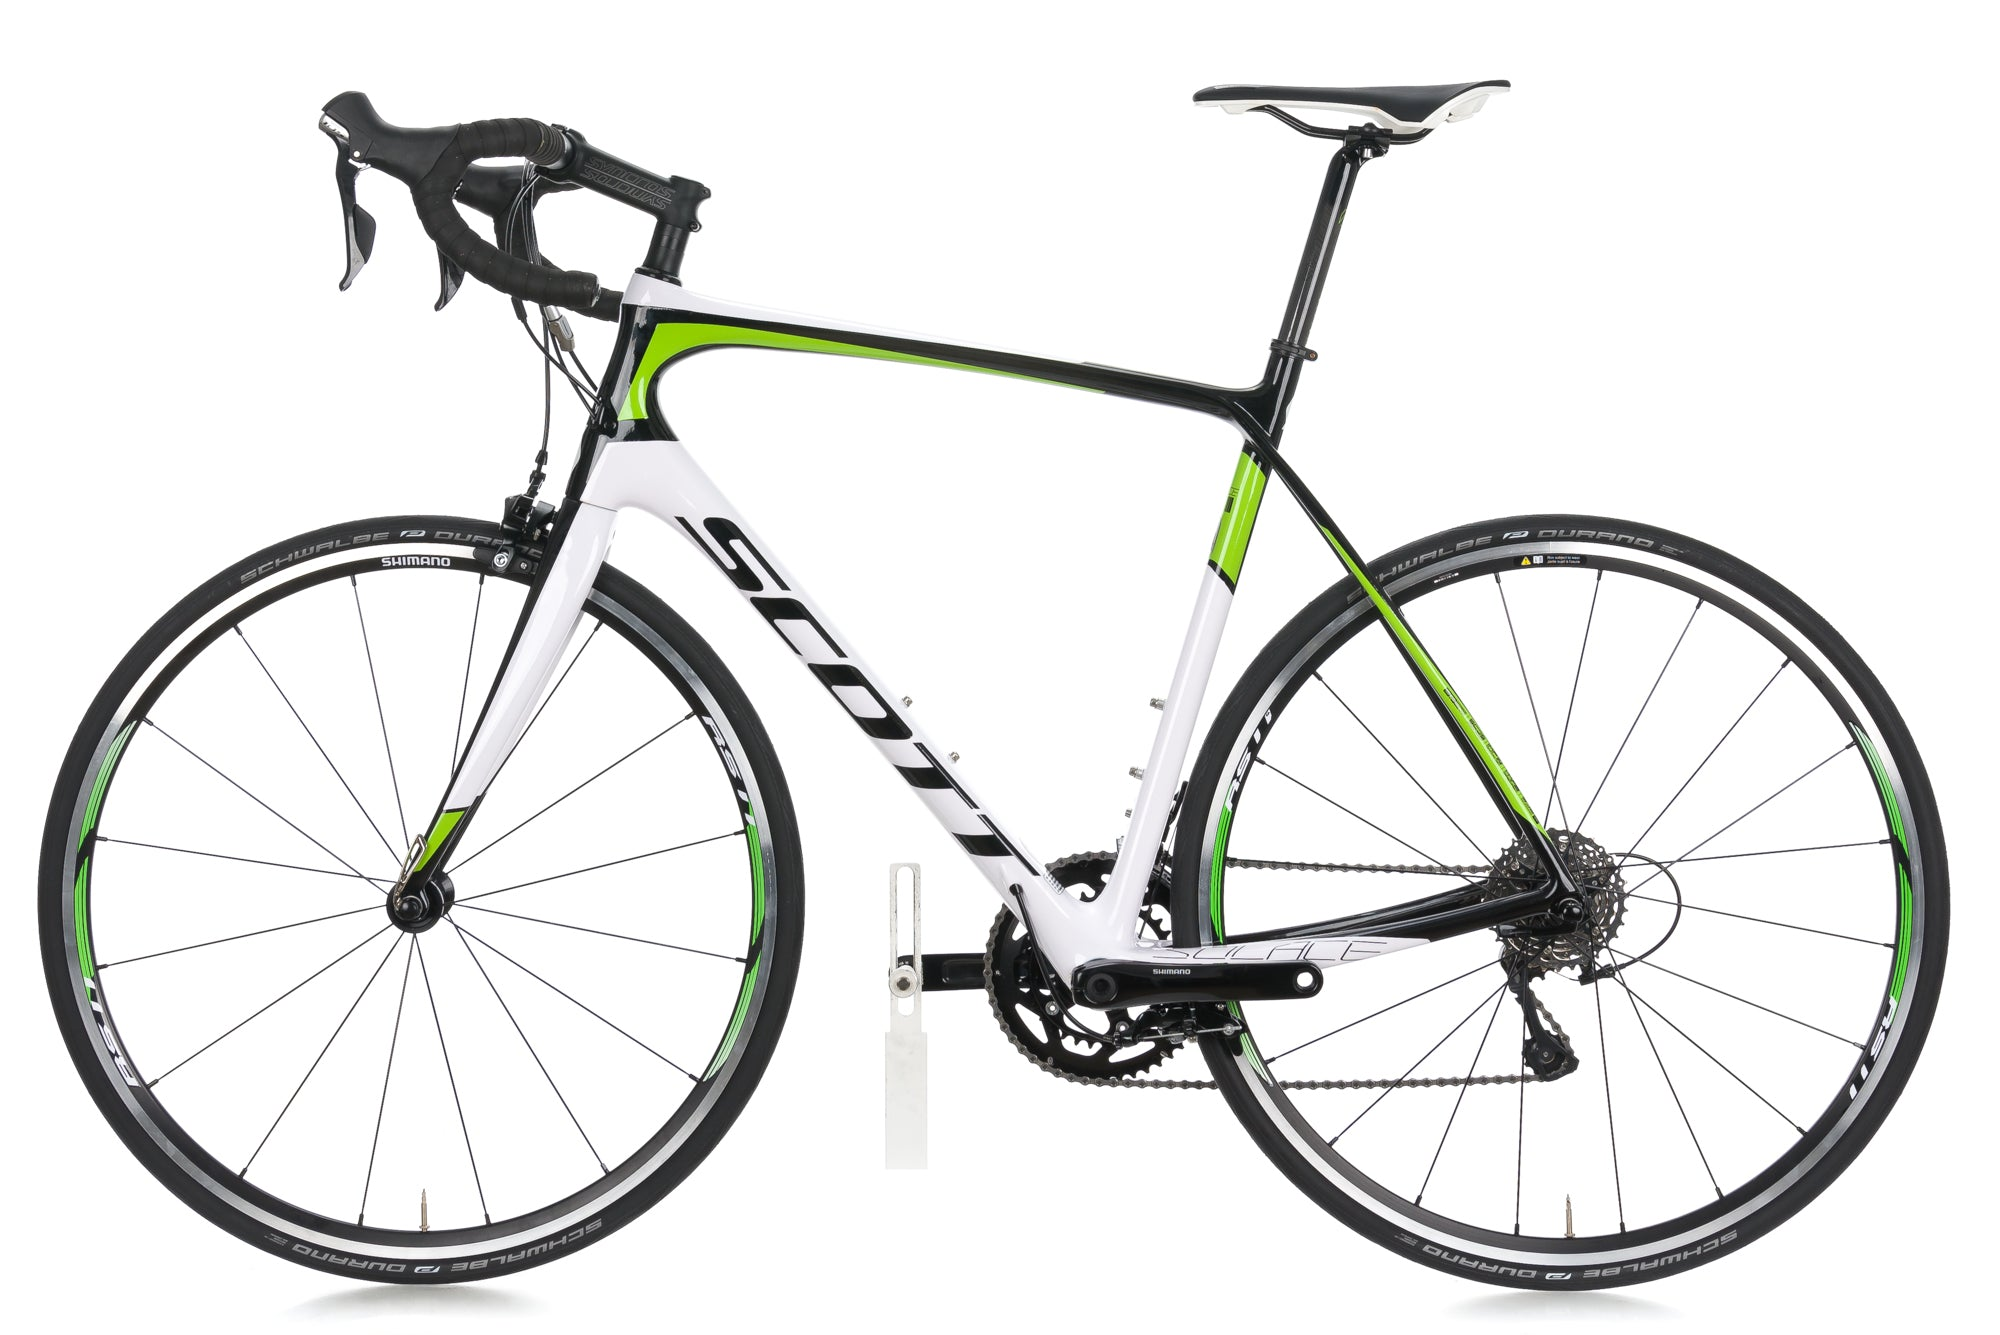 Scott Solace 30 58cm Bike - 2015 non-drive side